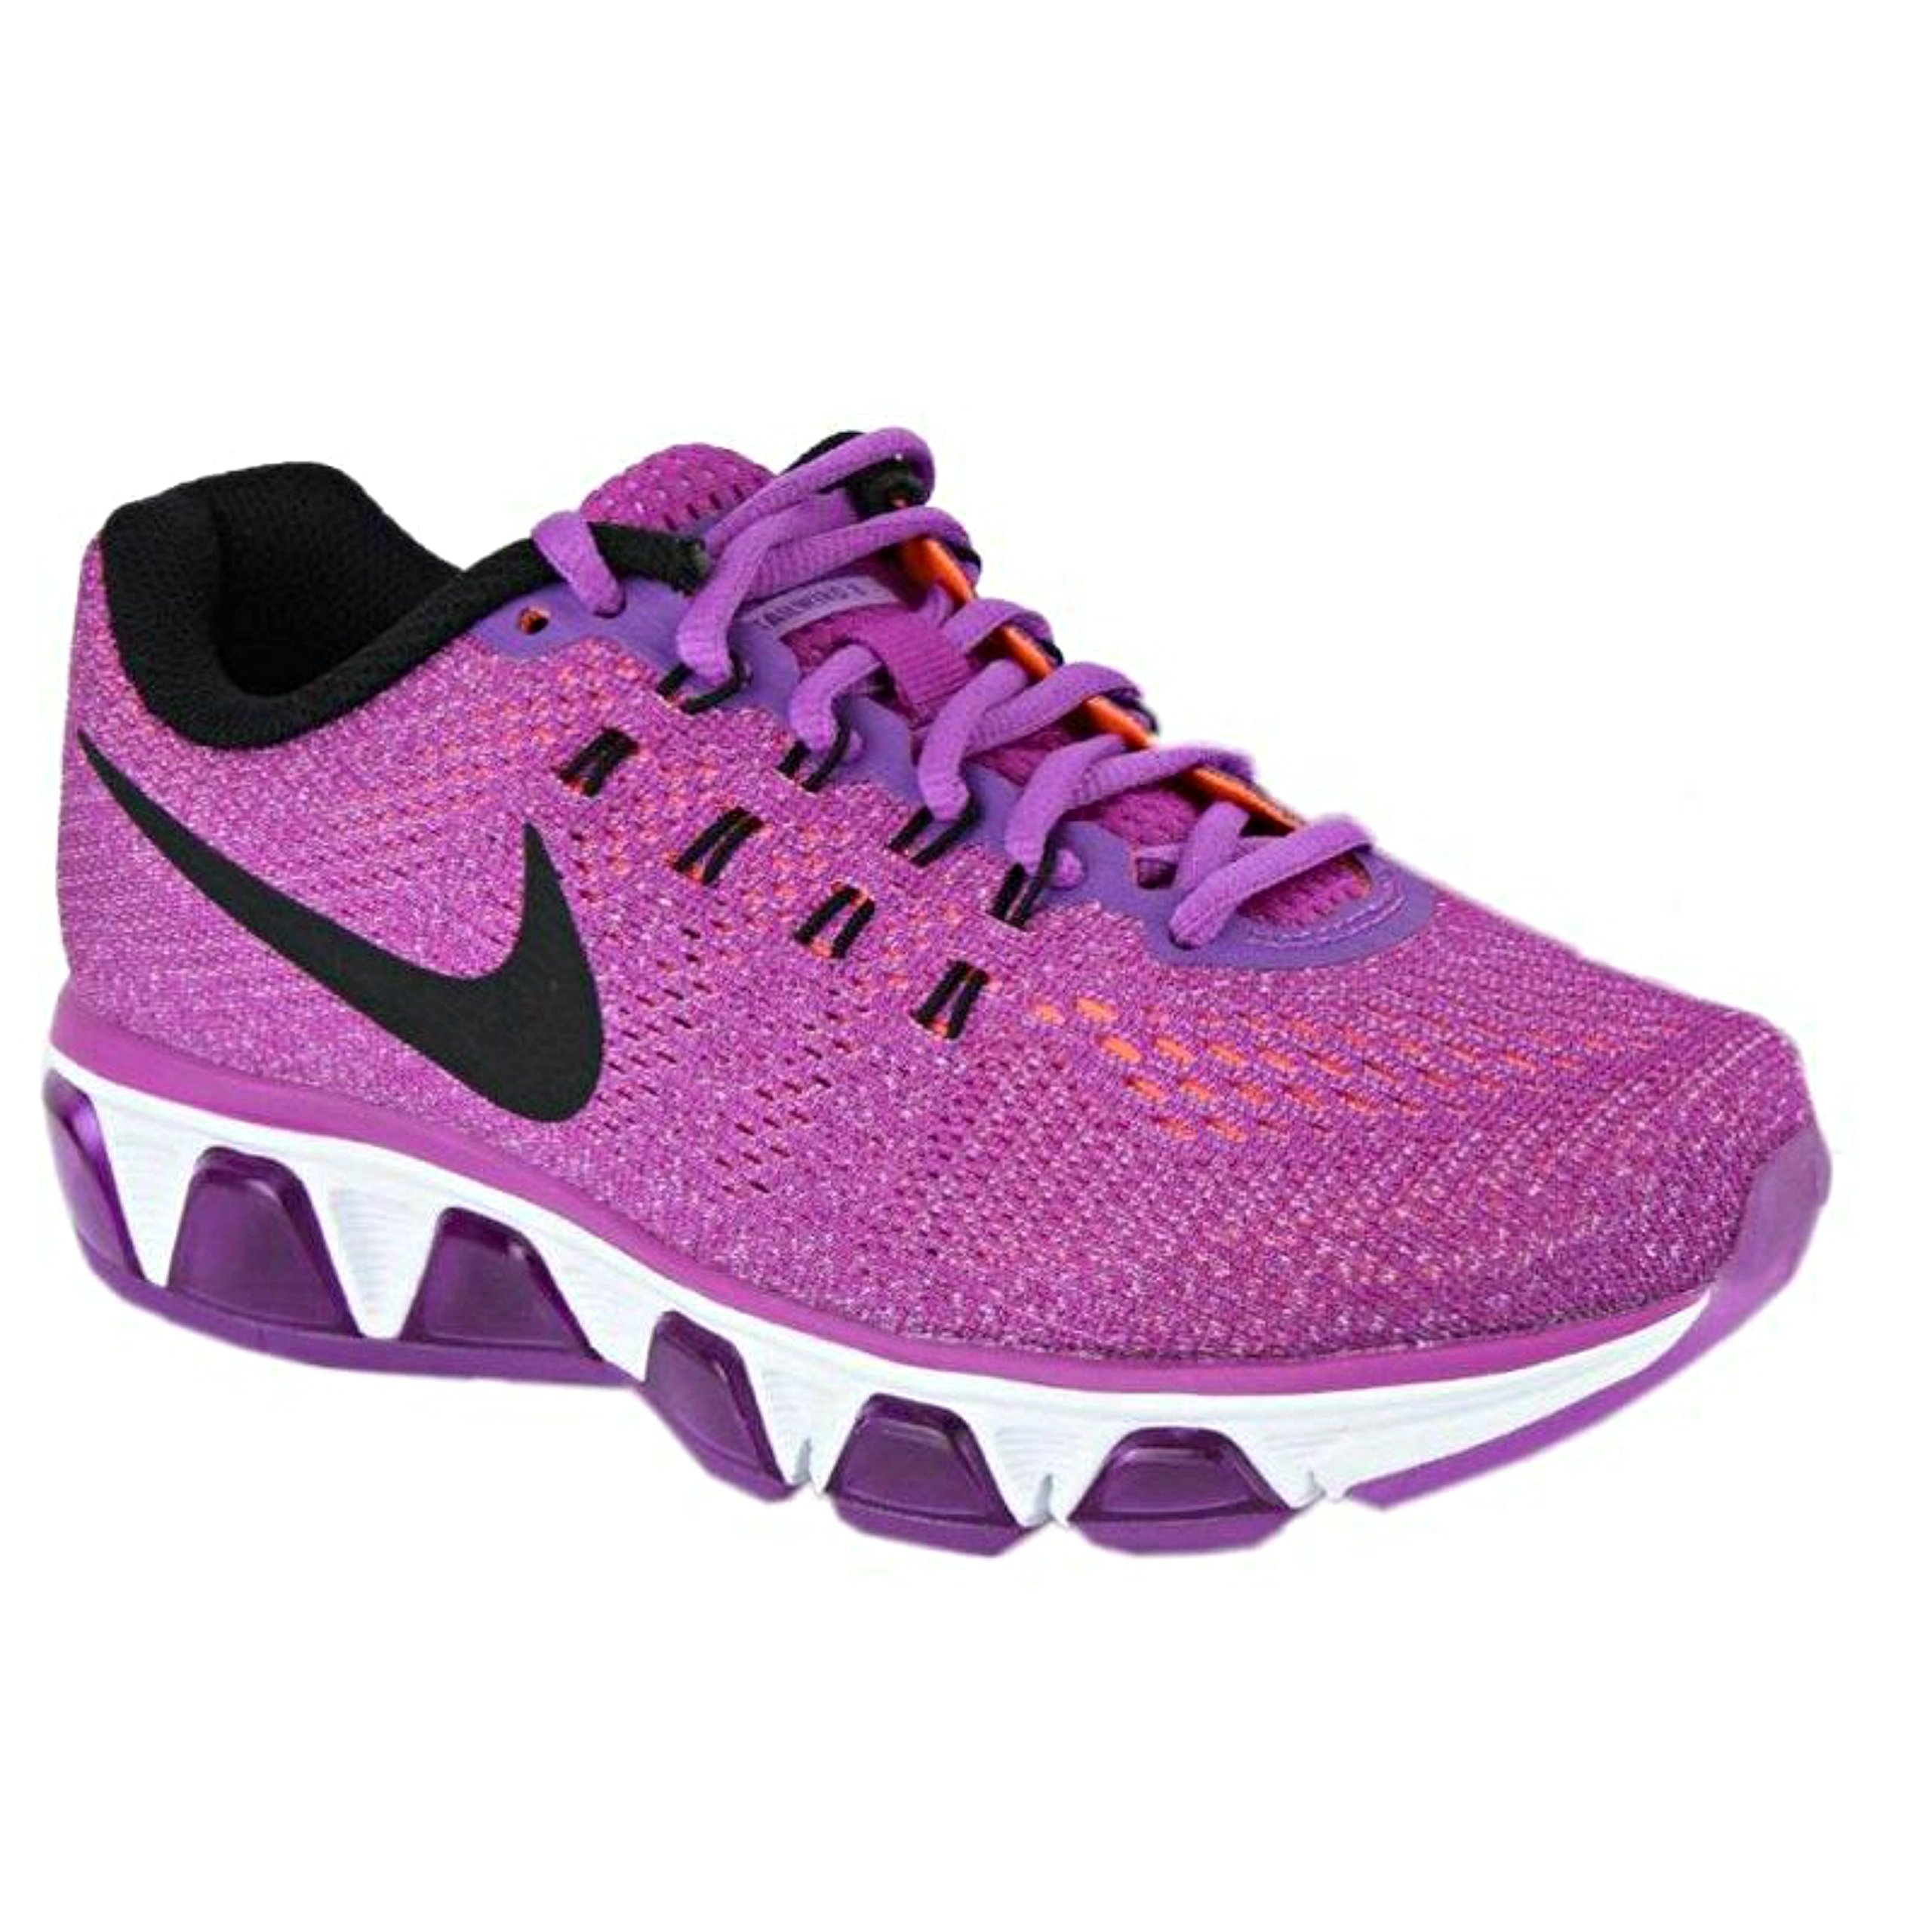 f41b7134fb15 where can i buy womens nike air max tailwind 8 vivid purple black hyper  orange 805942